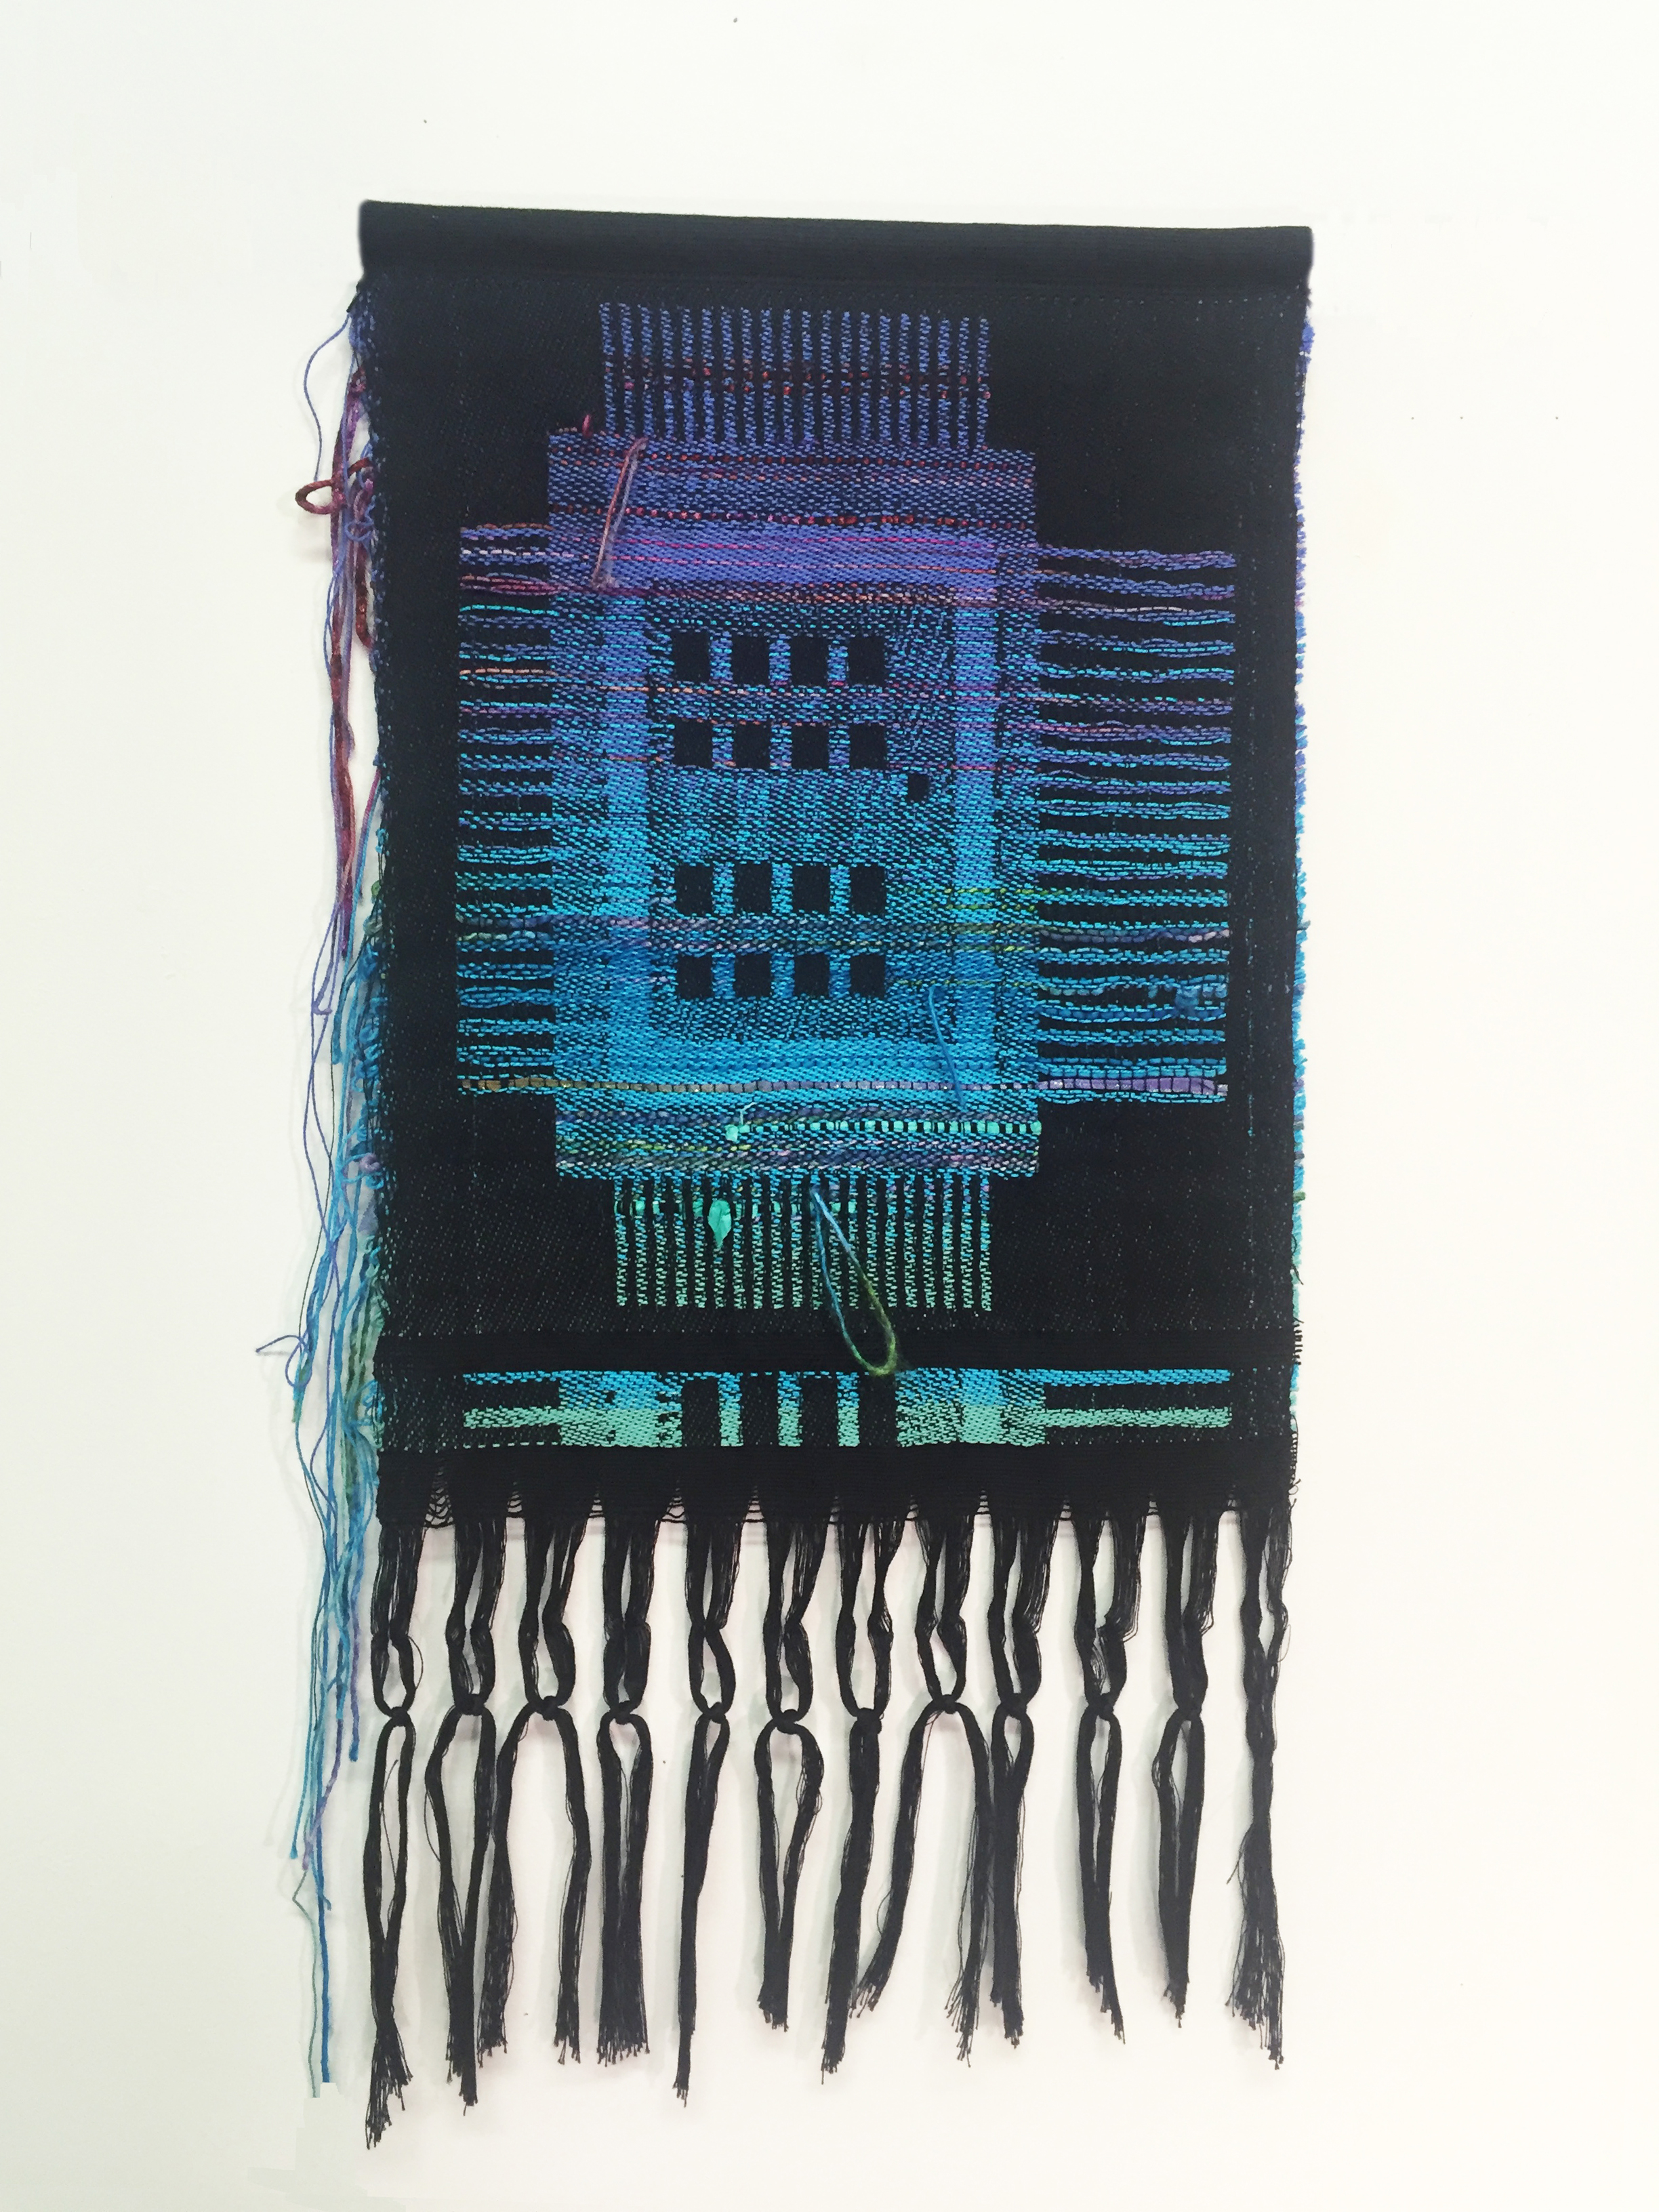 "Robin Kang, Intel Core, Hand Jacquard woven cotton, hand dyed wool, and synthetic fibers 13 x 23"", 2016"